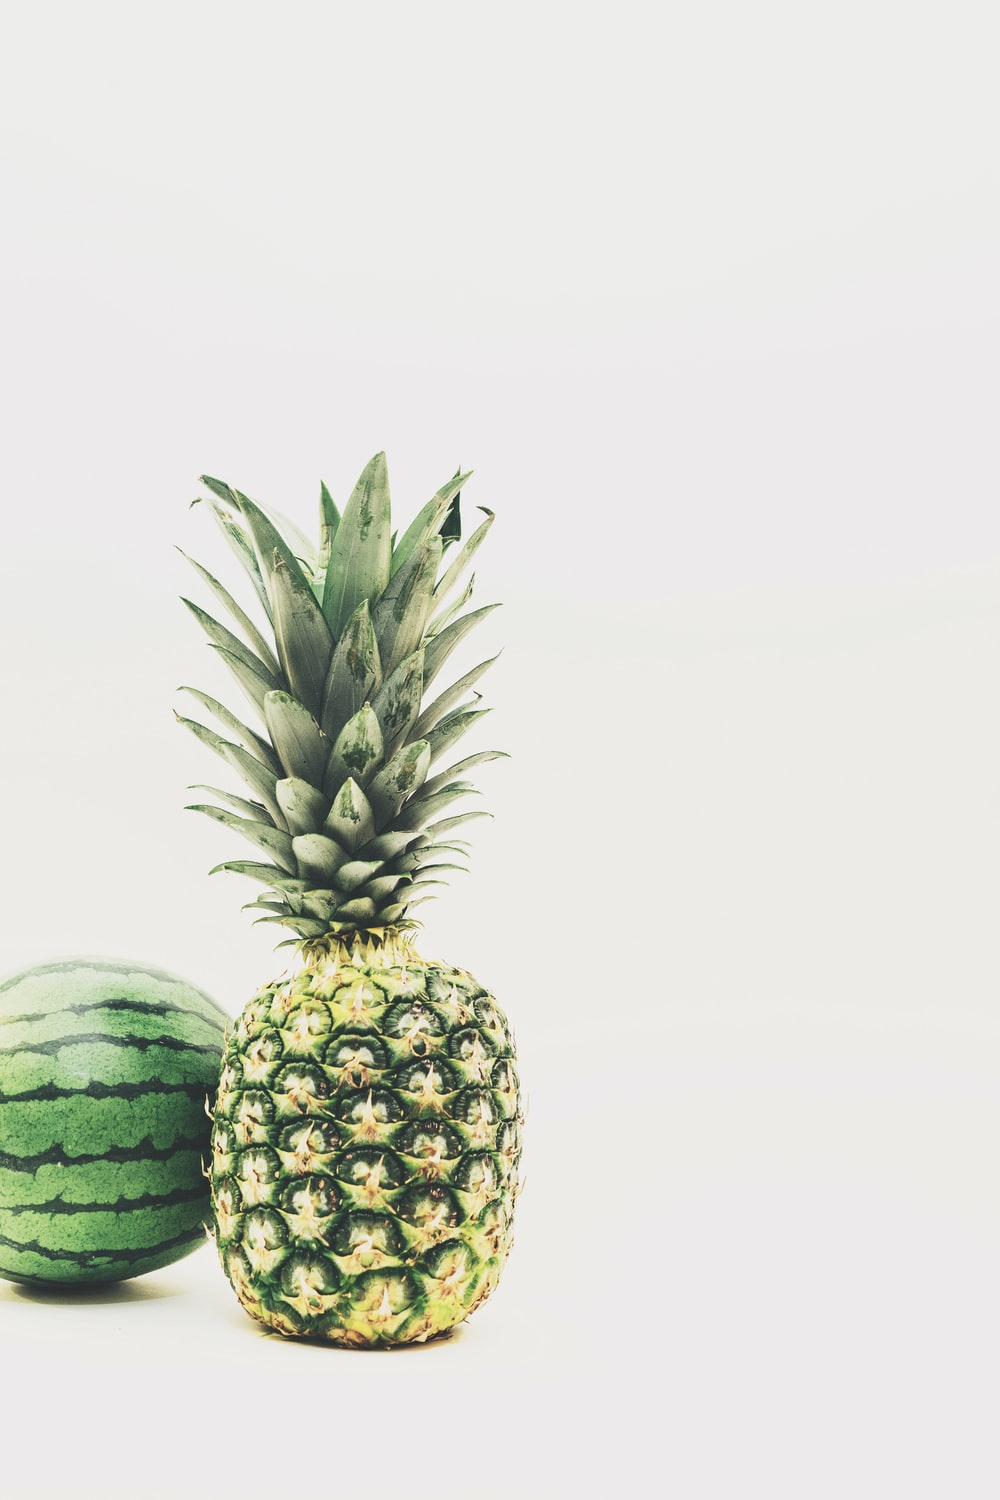 water melon and pineapple